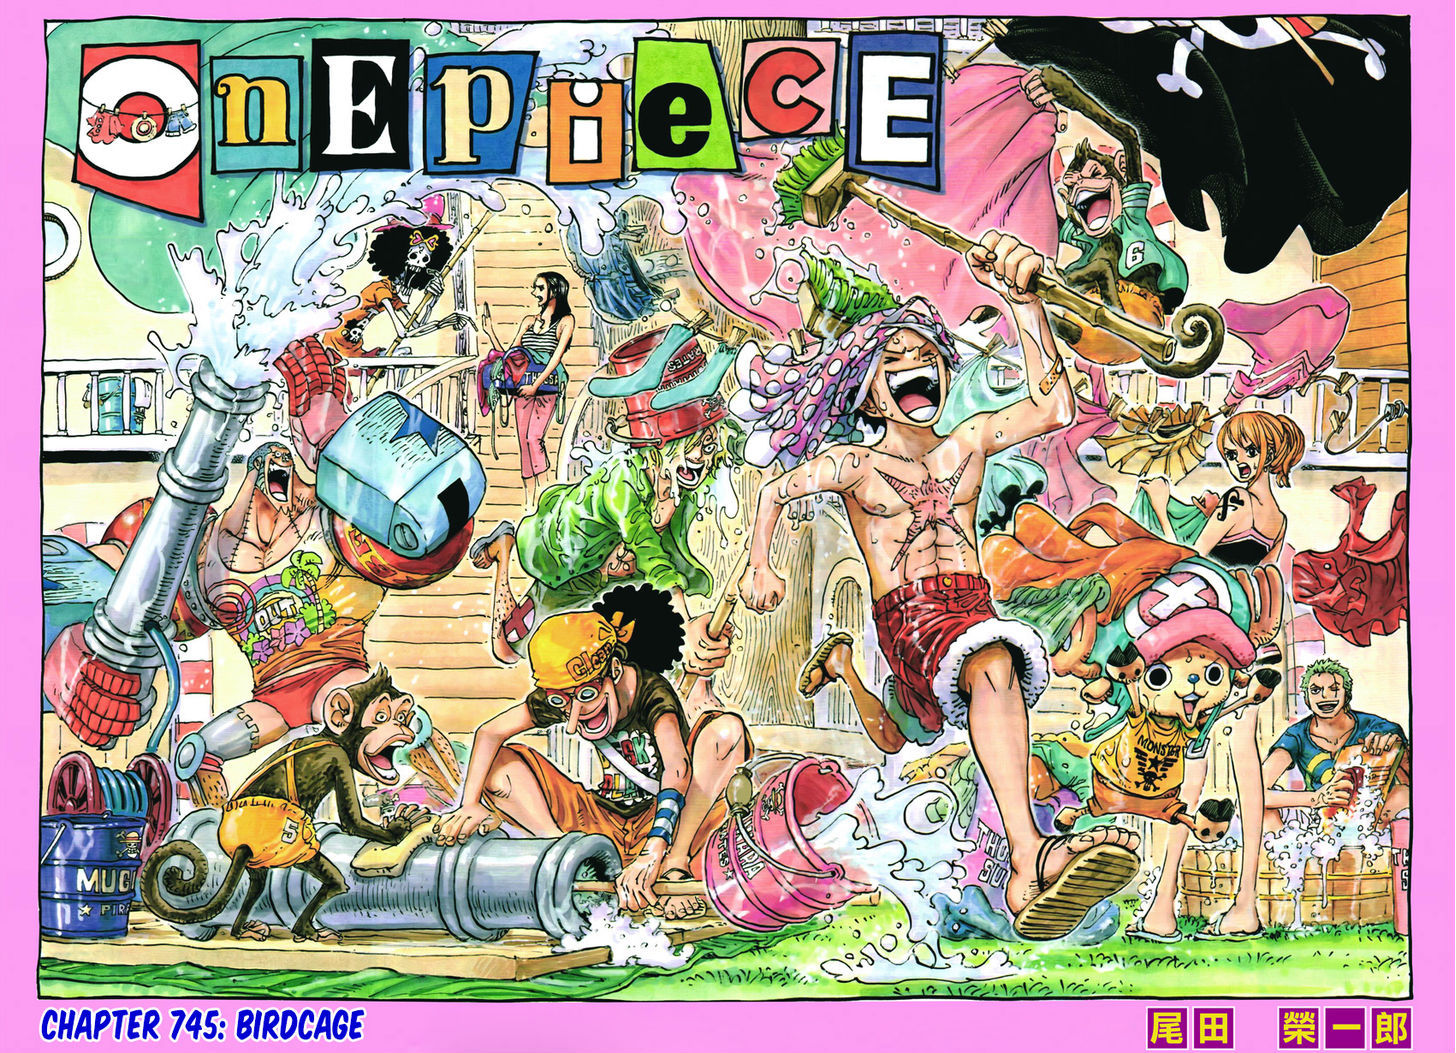 https://im.nineanime.com/comics/pic9/32/96/3094/OnePiece7450367.jpg Page 1